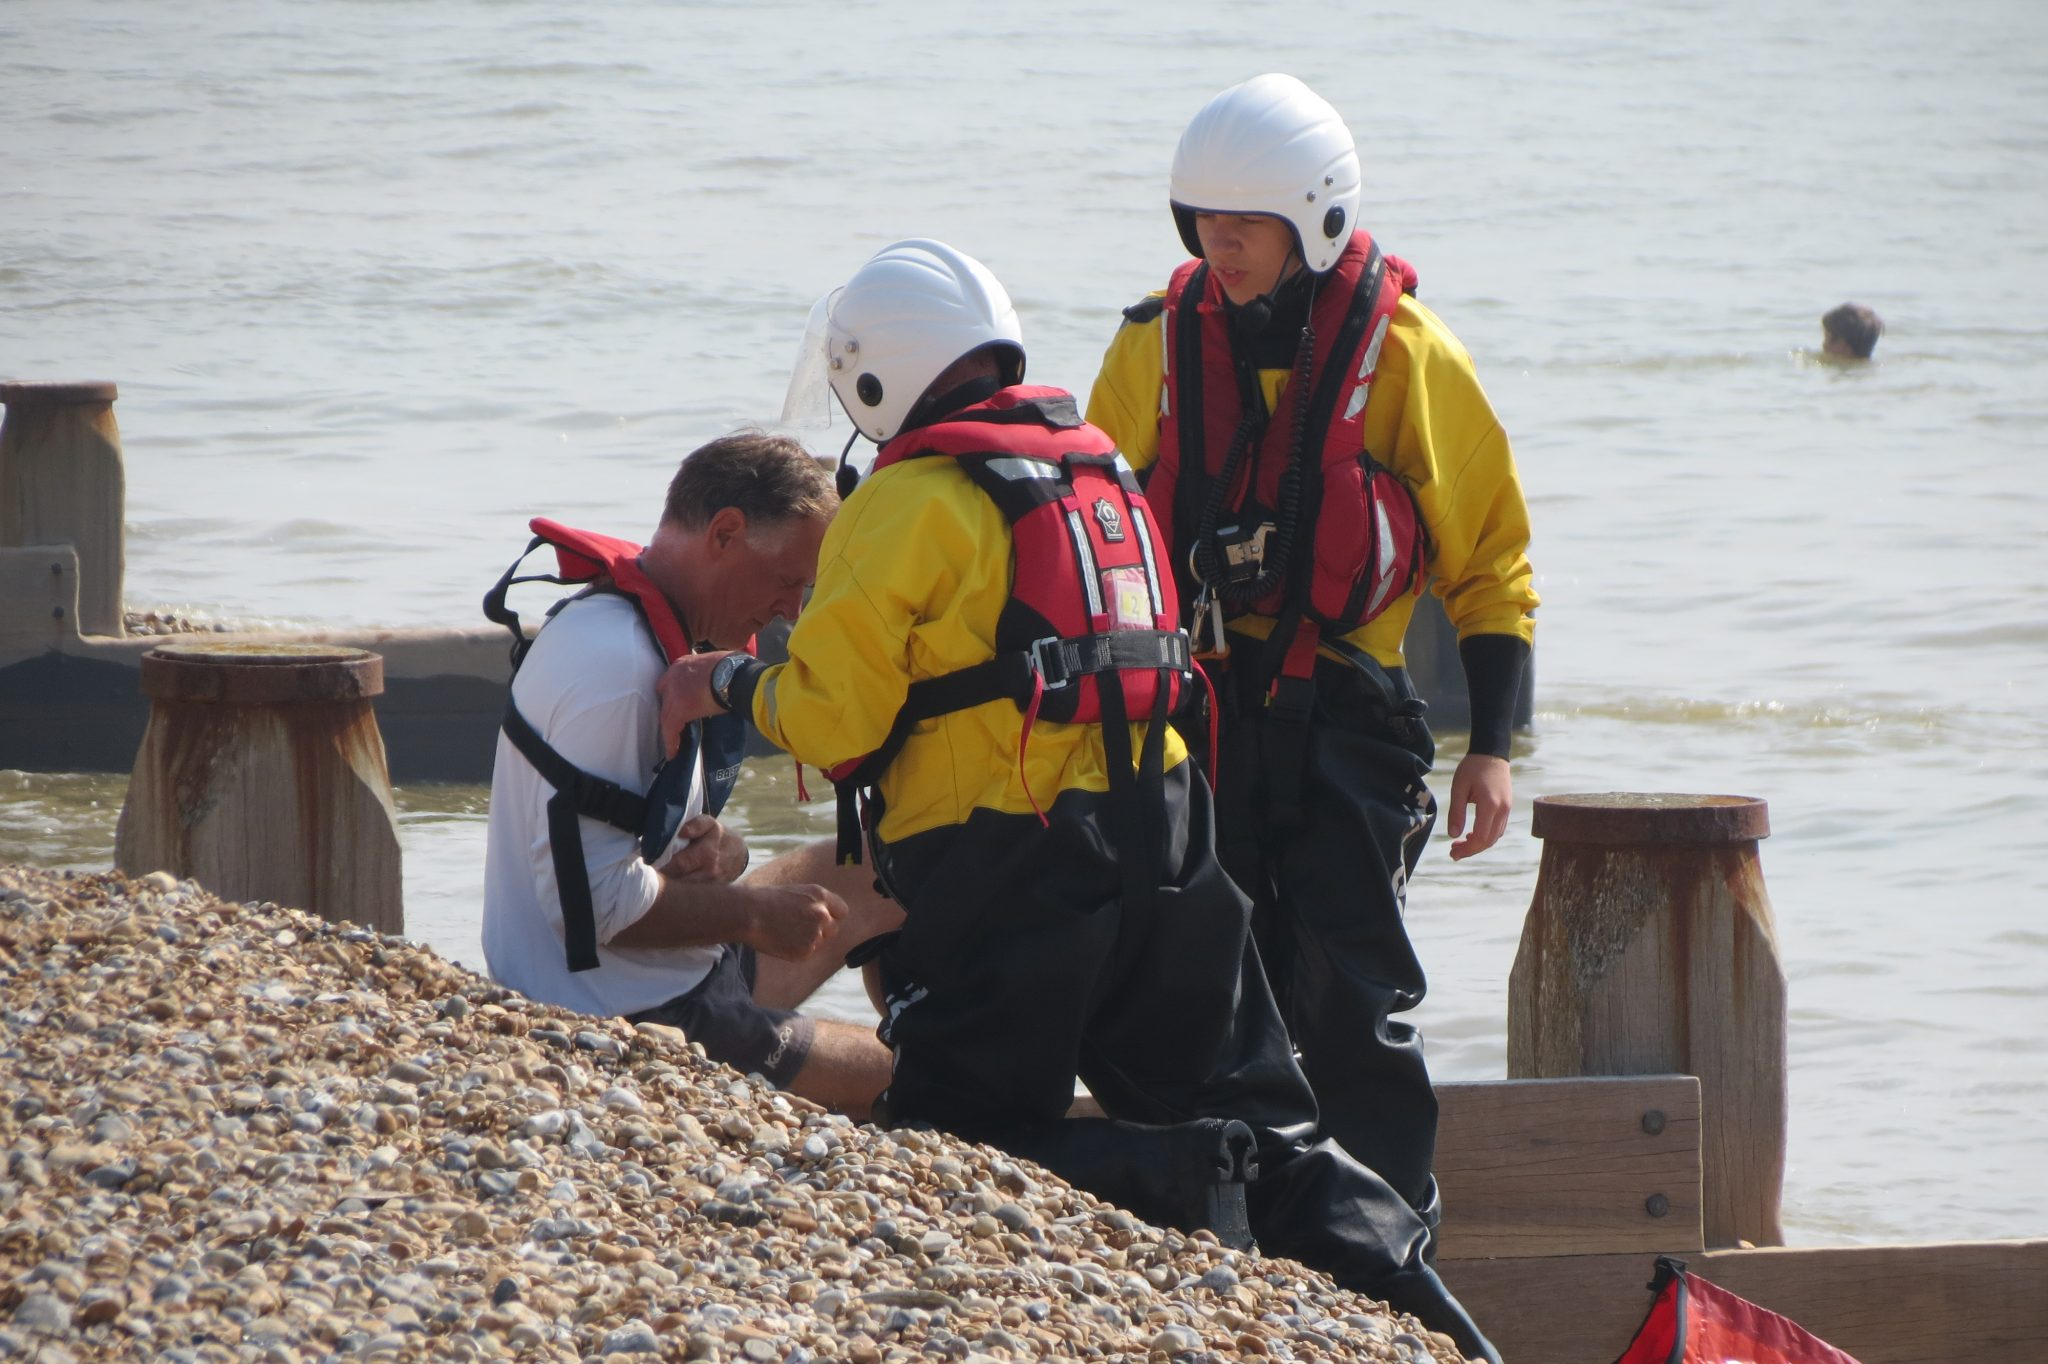 Casualty Retrieval Training #2